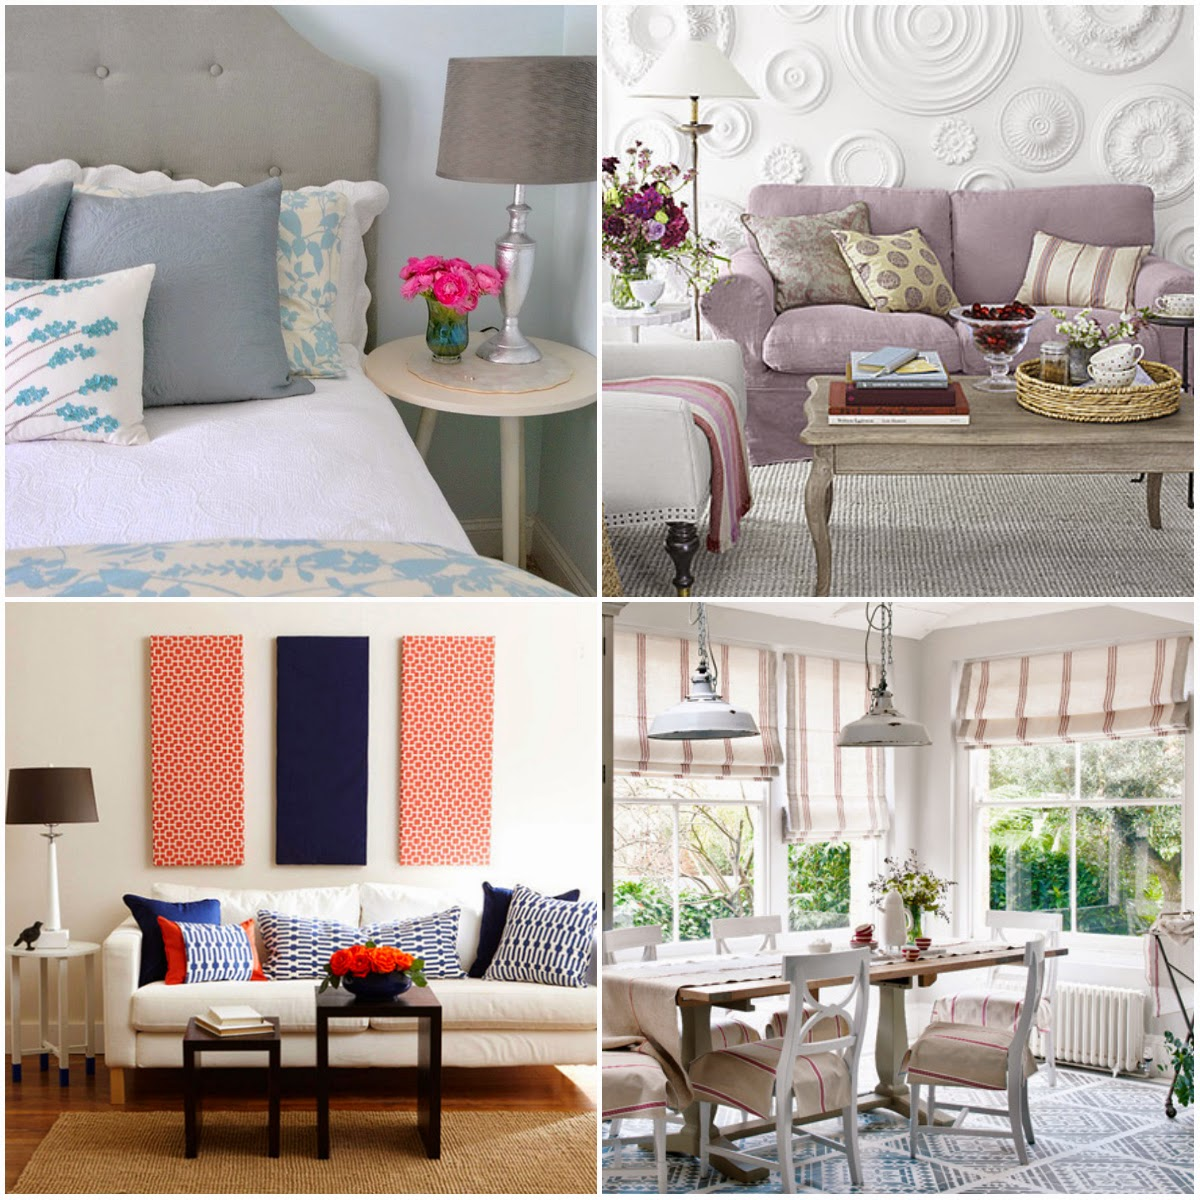 Start Decorating Your Home With Different Decoration Fresh DIY Ideas Fabrics From Online Homedecor Store